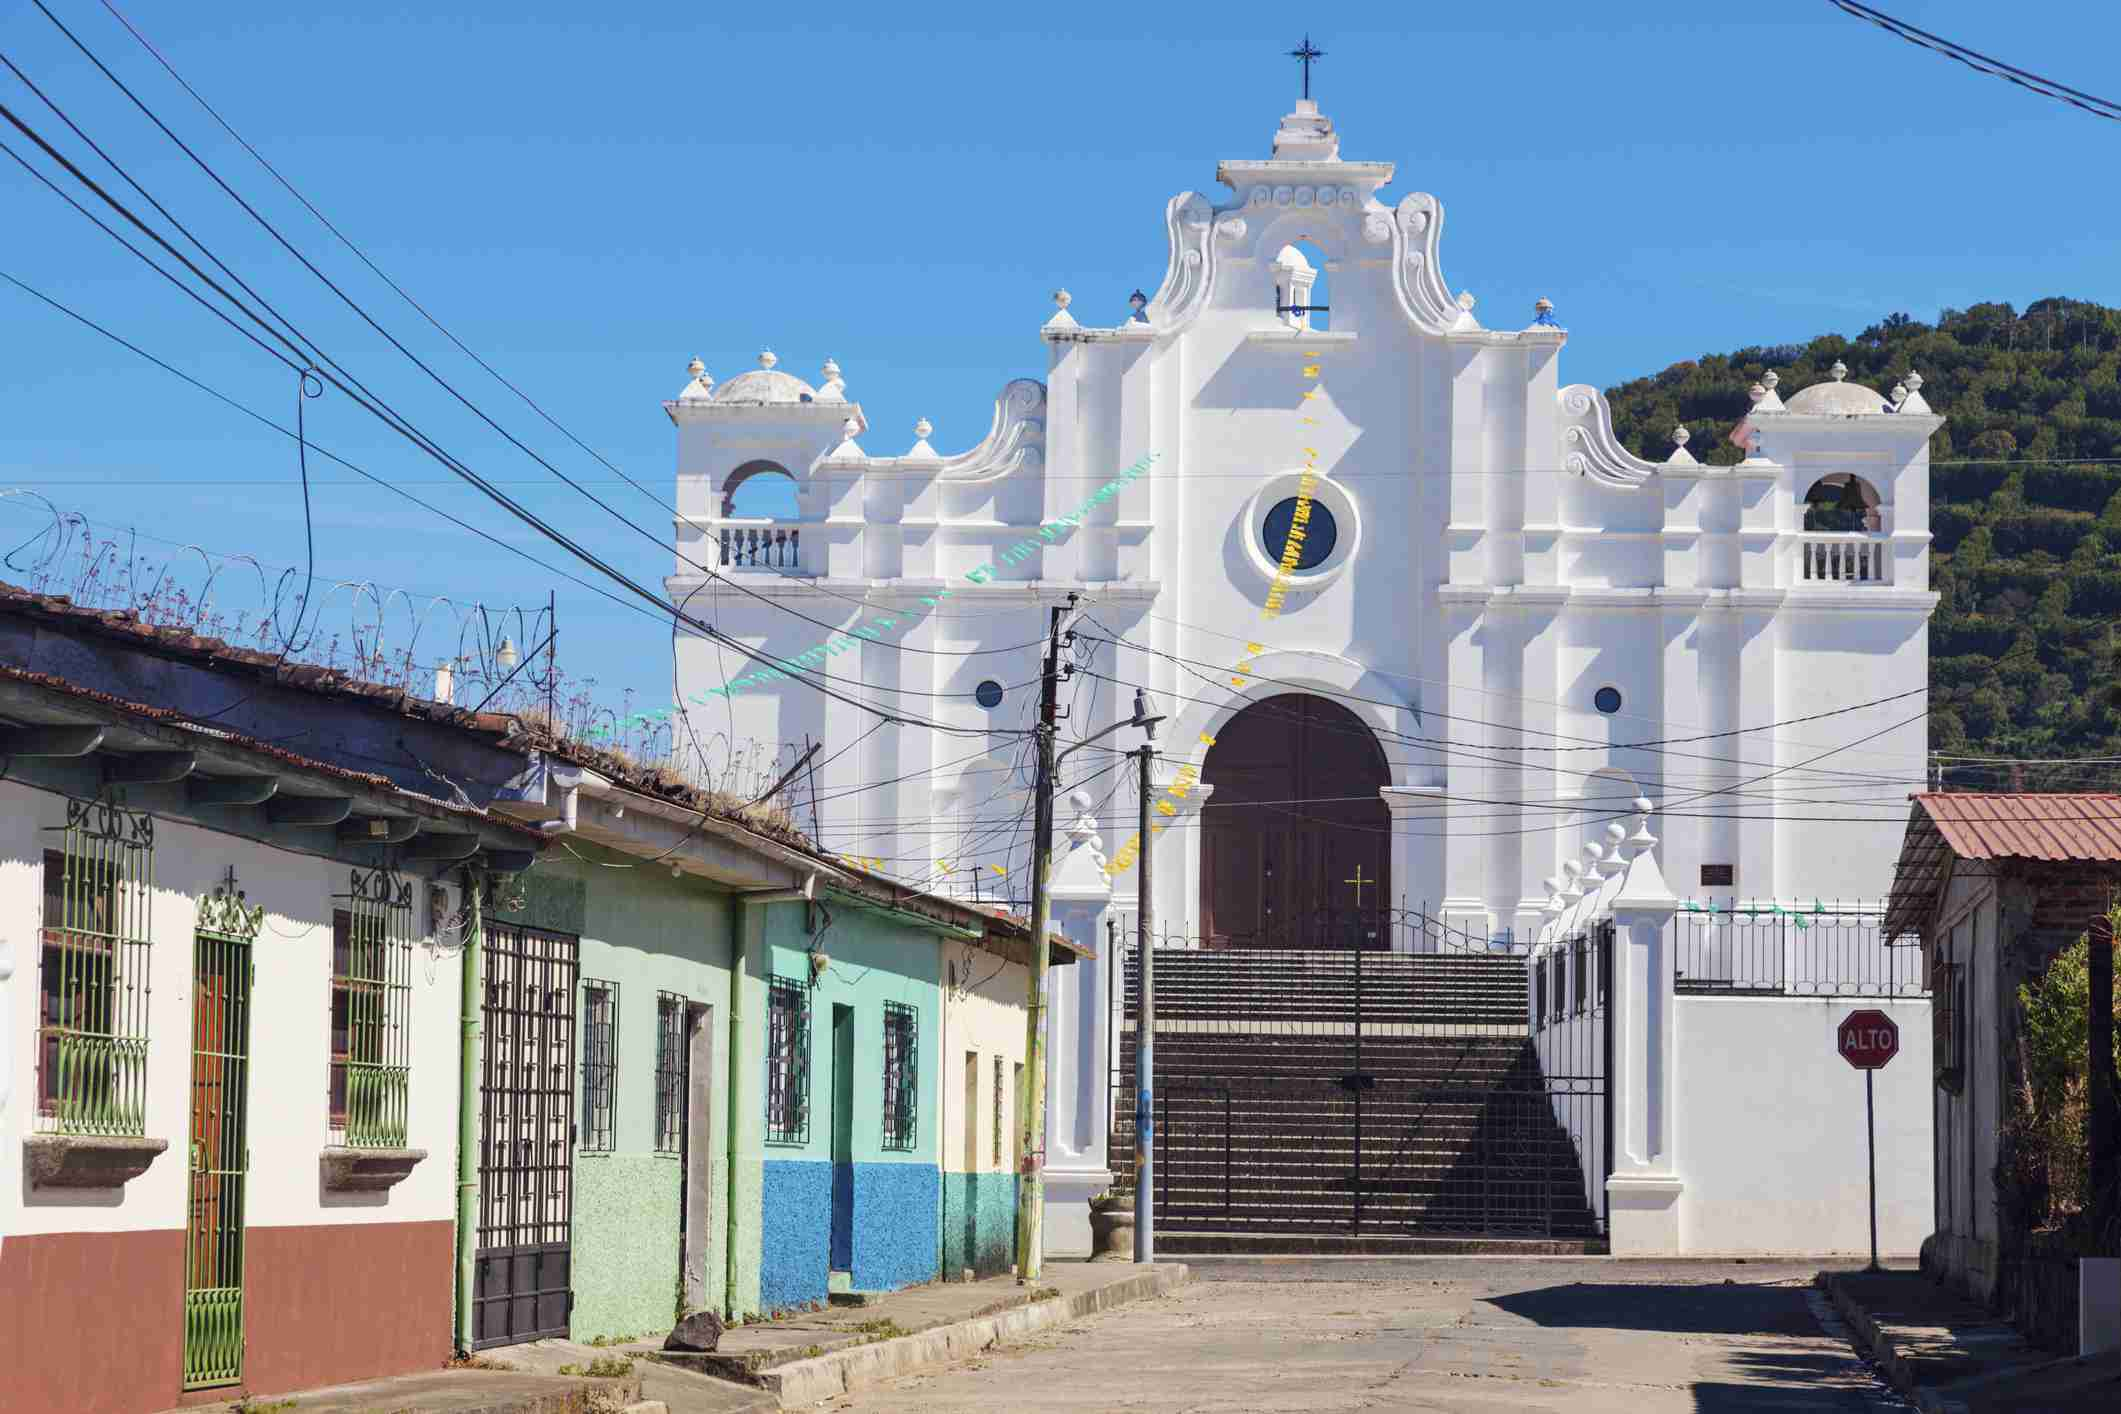 White church in Apaneca, El Salvador with colorful buildings in front of it